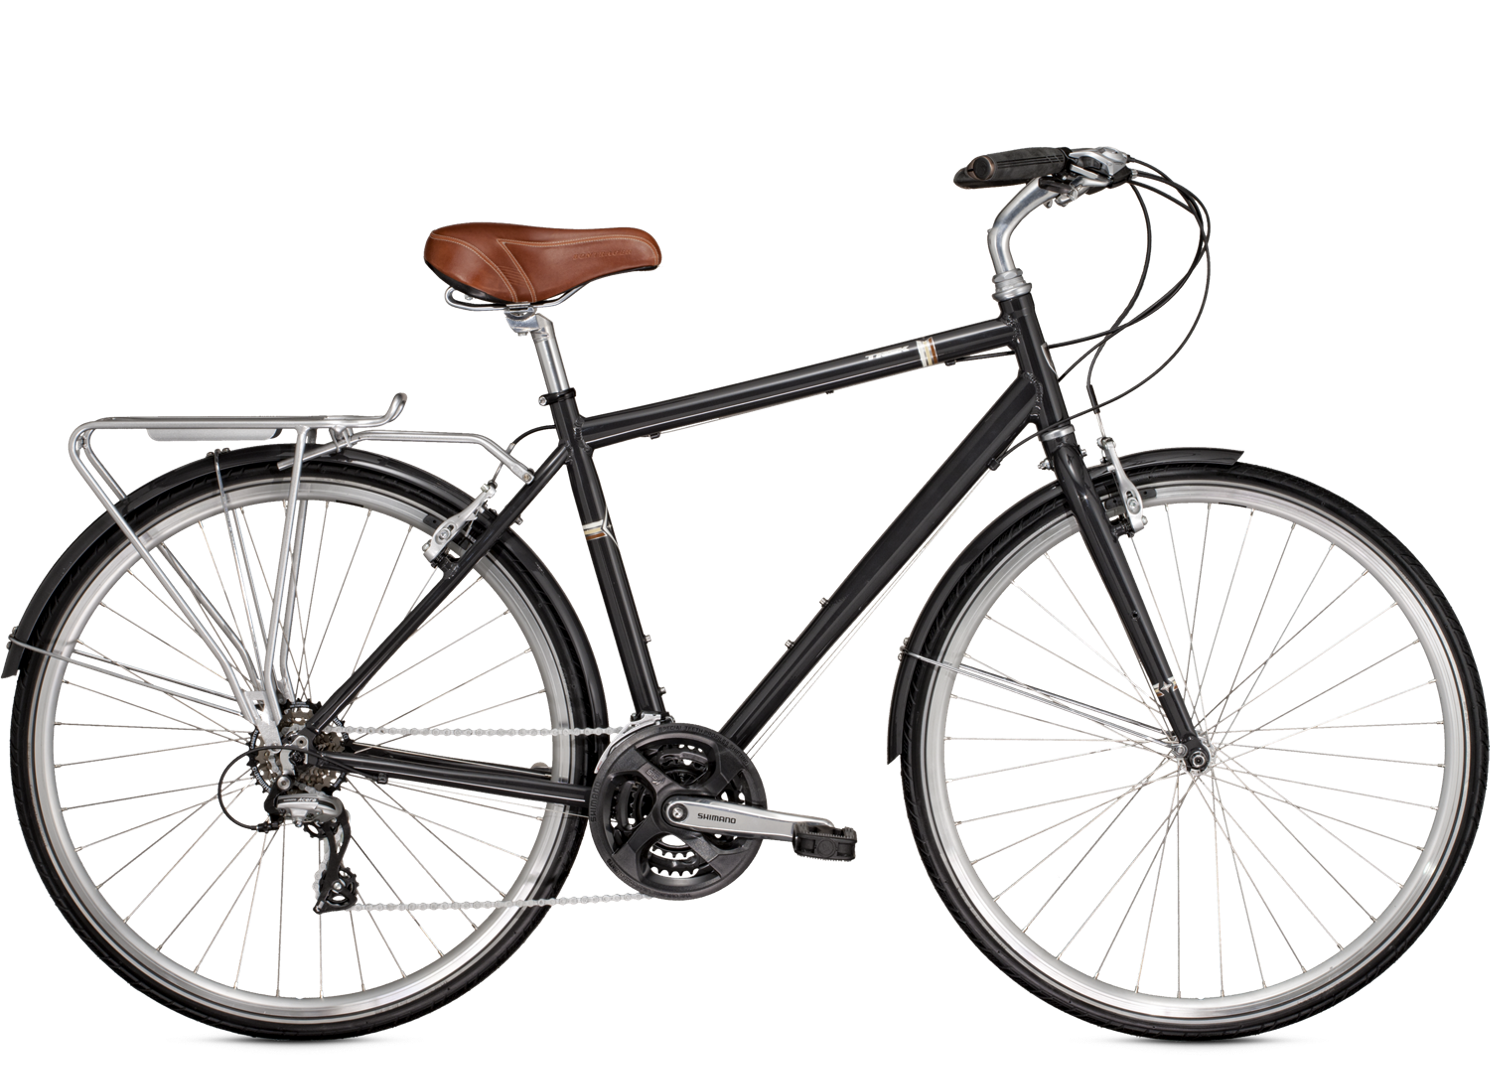 Bicycles png images free. Cycle clipart retro bike